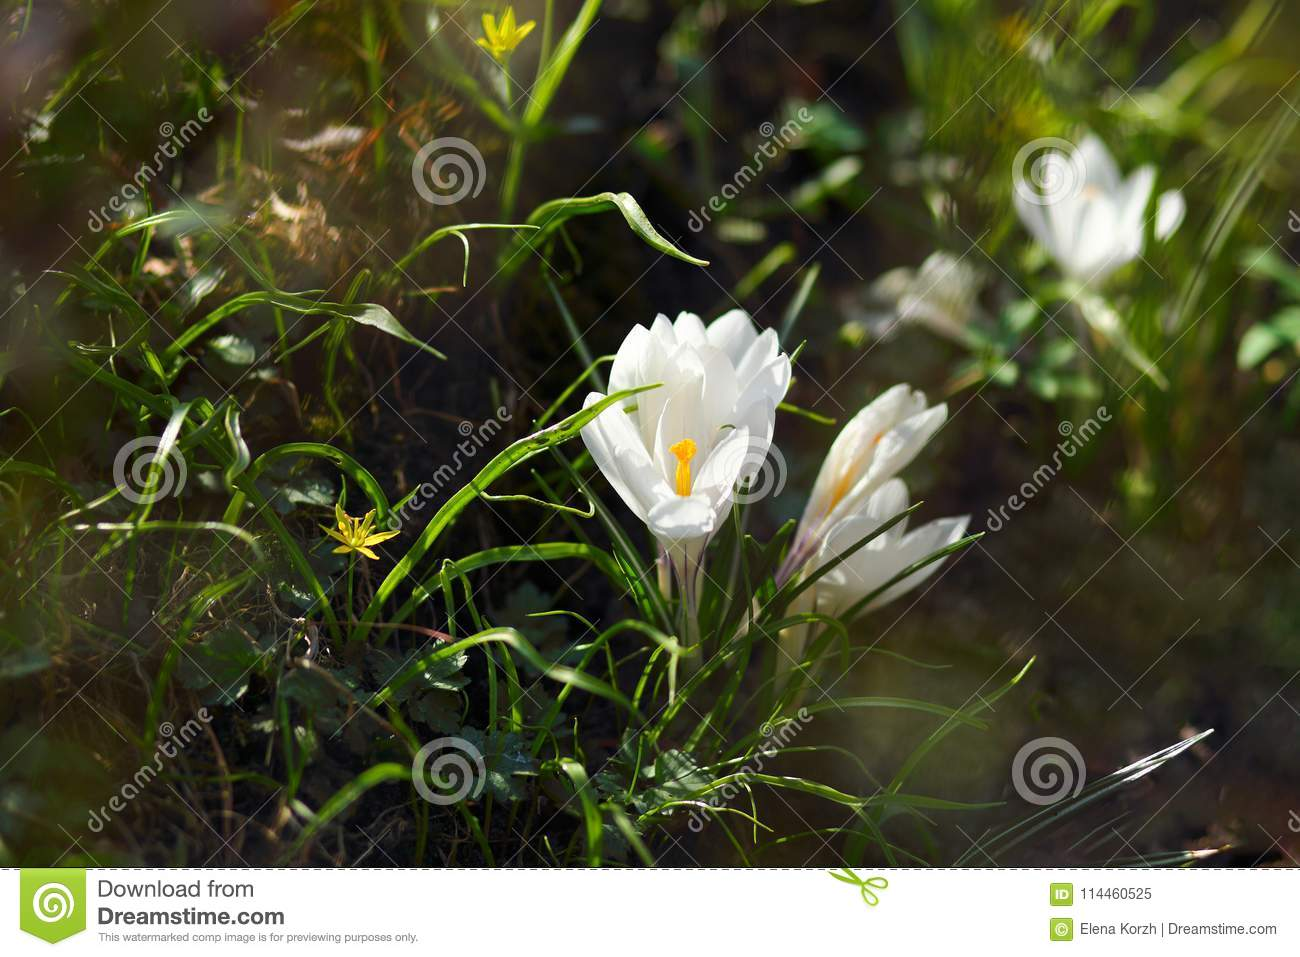 White Crocus In Grass With Yellow Flowers Stock Image Image Of